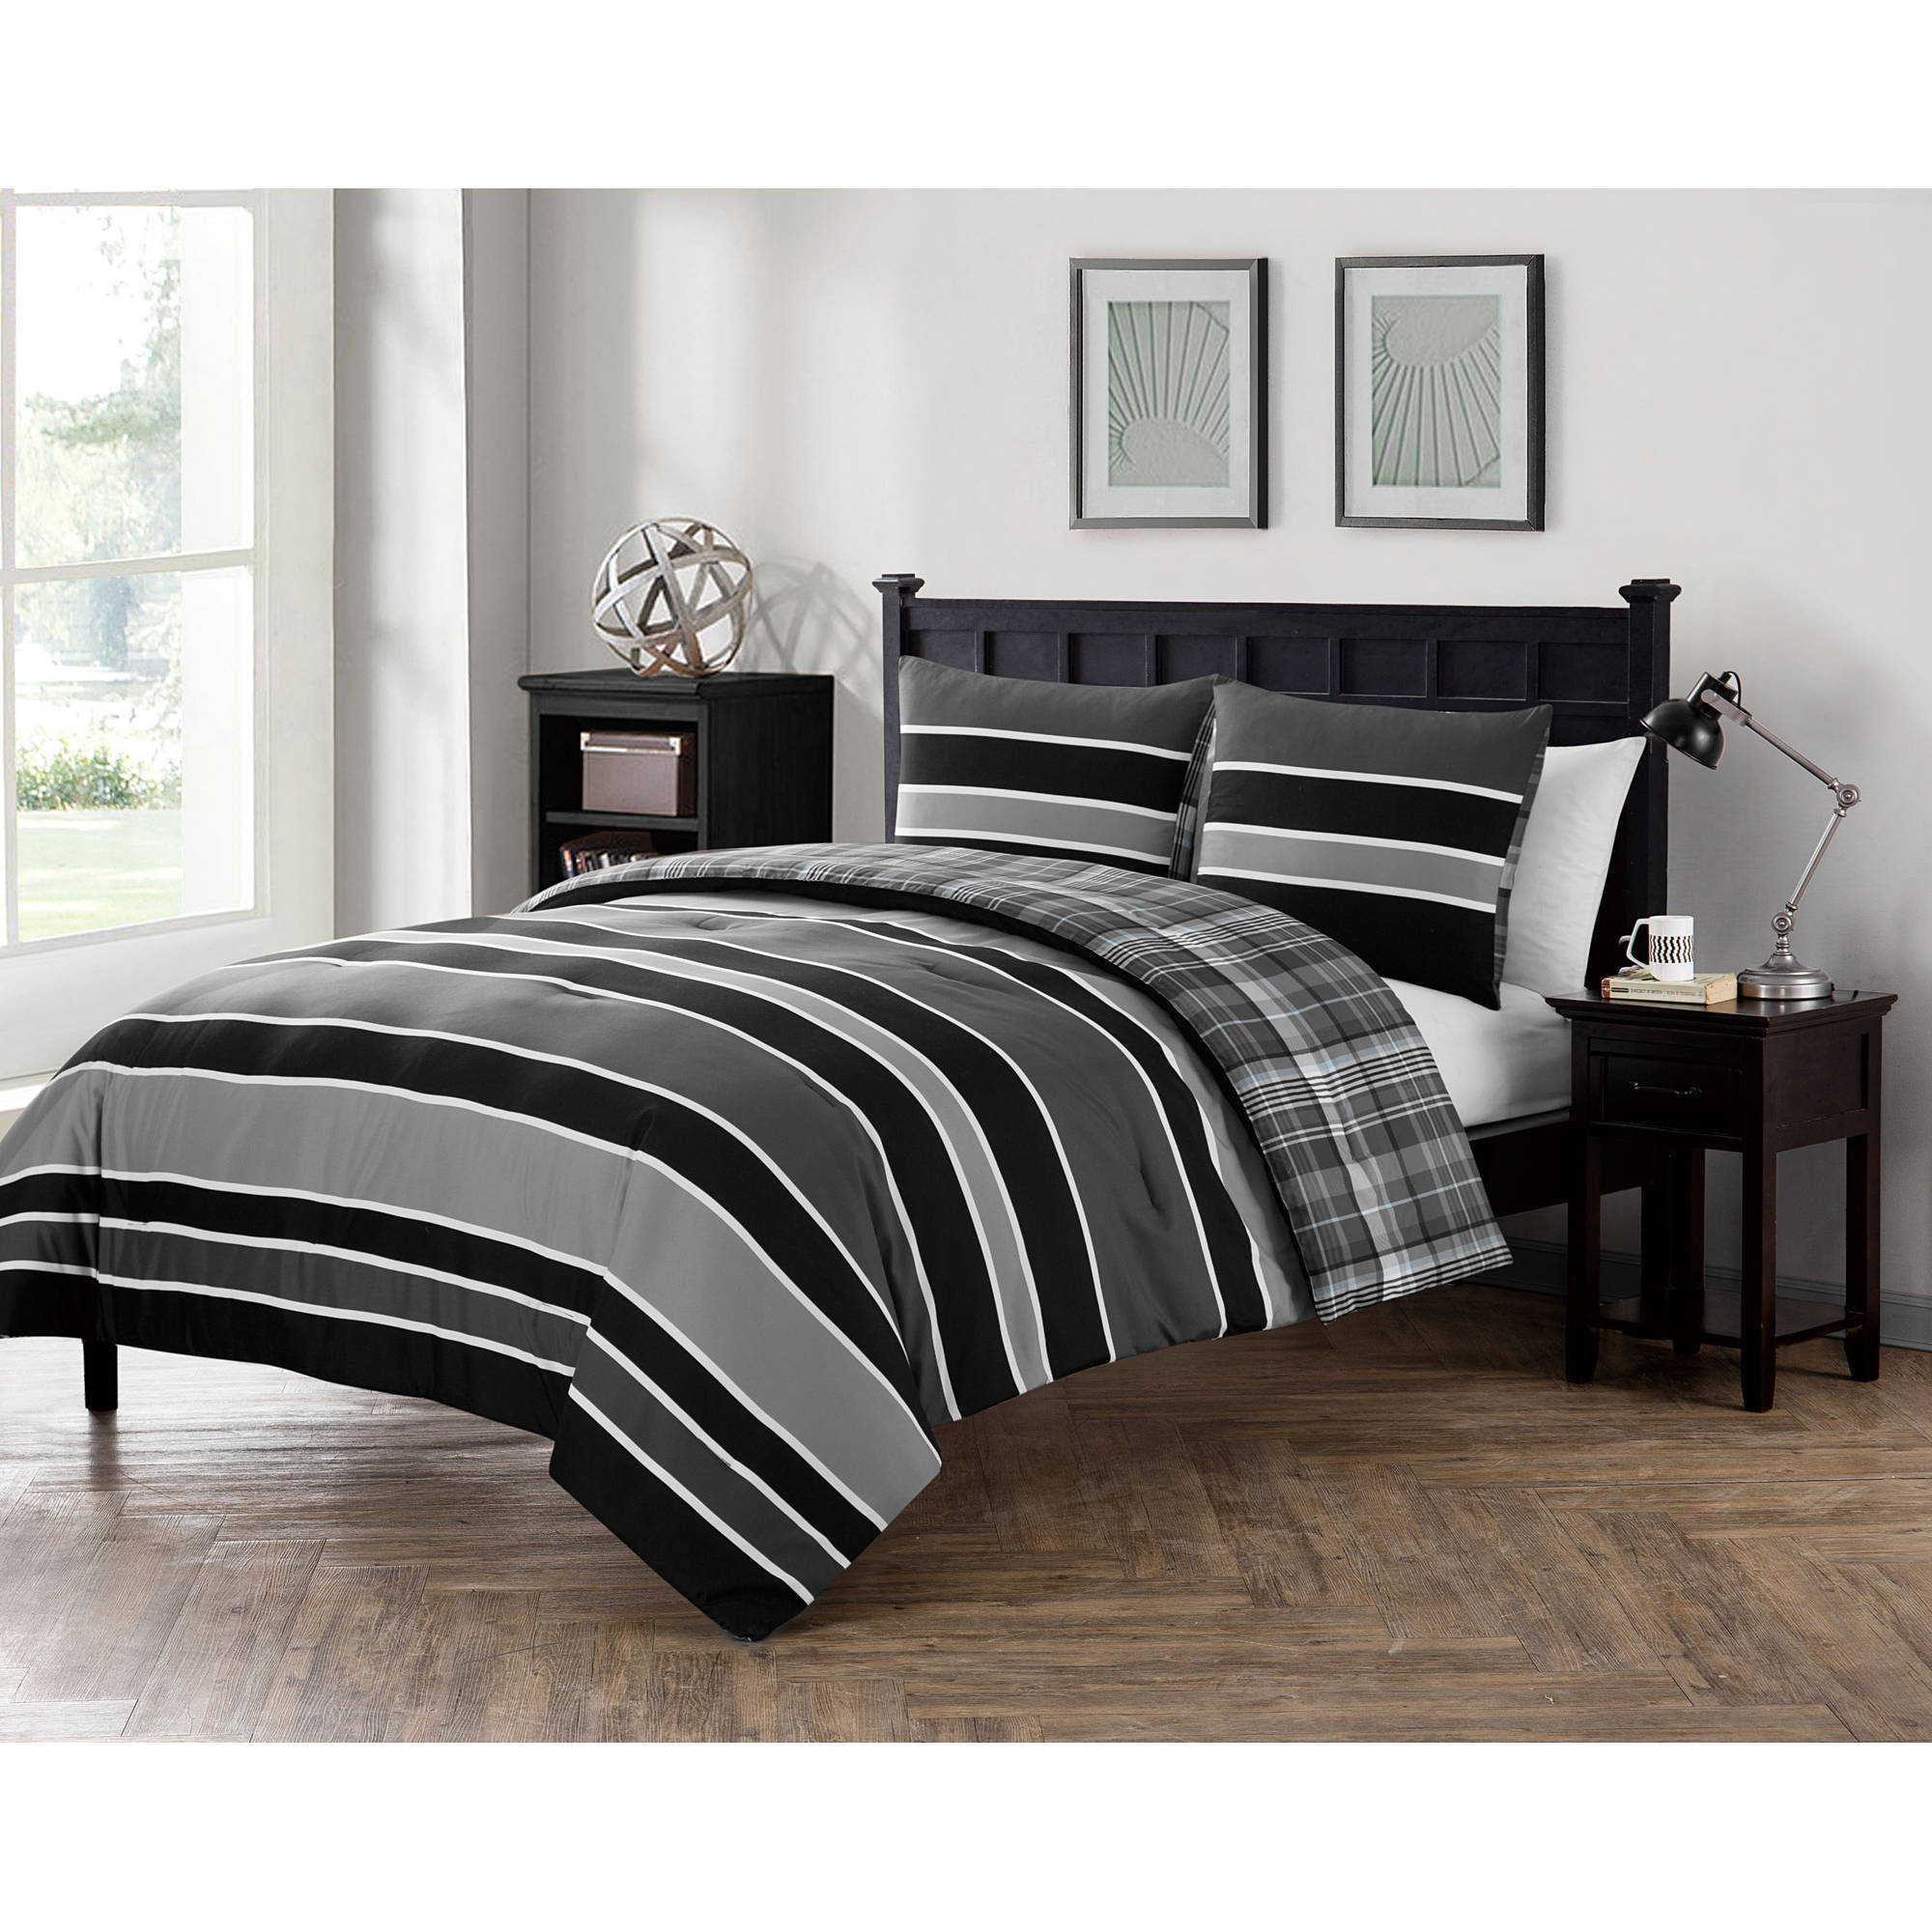 VCNY Home Stripe Printed 2/3 Piece Baxter Reversible Plaid Bedding Comforter Set, Shams Included